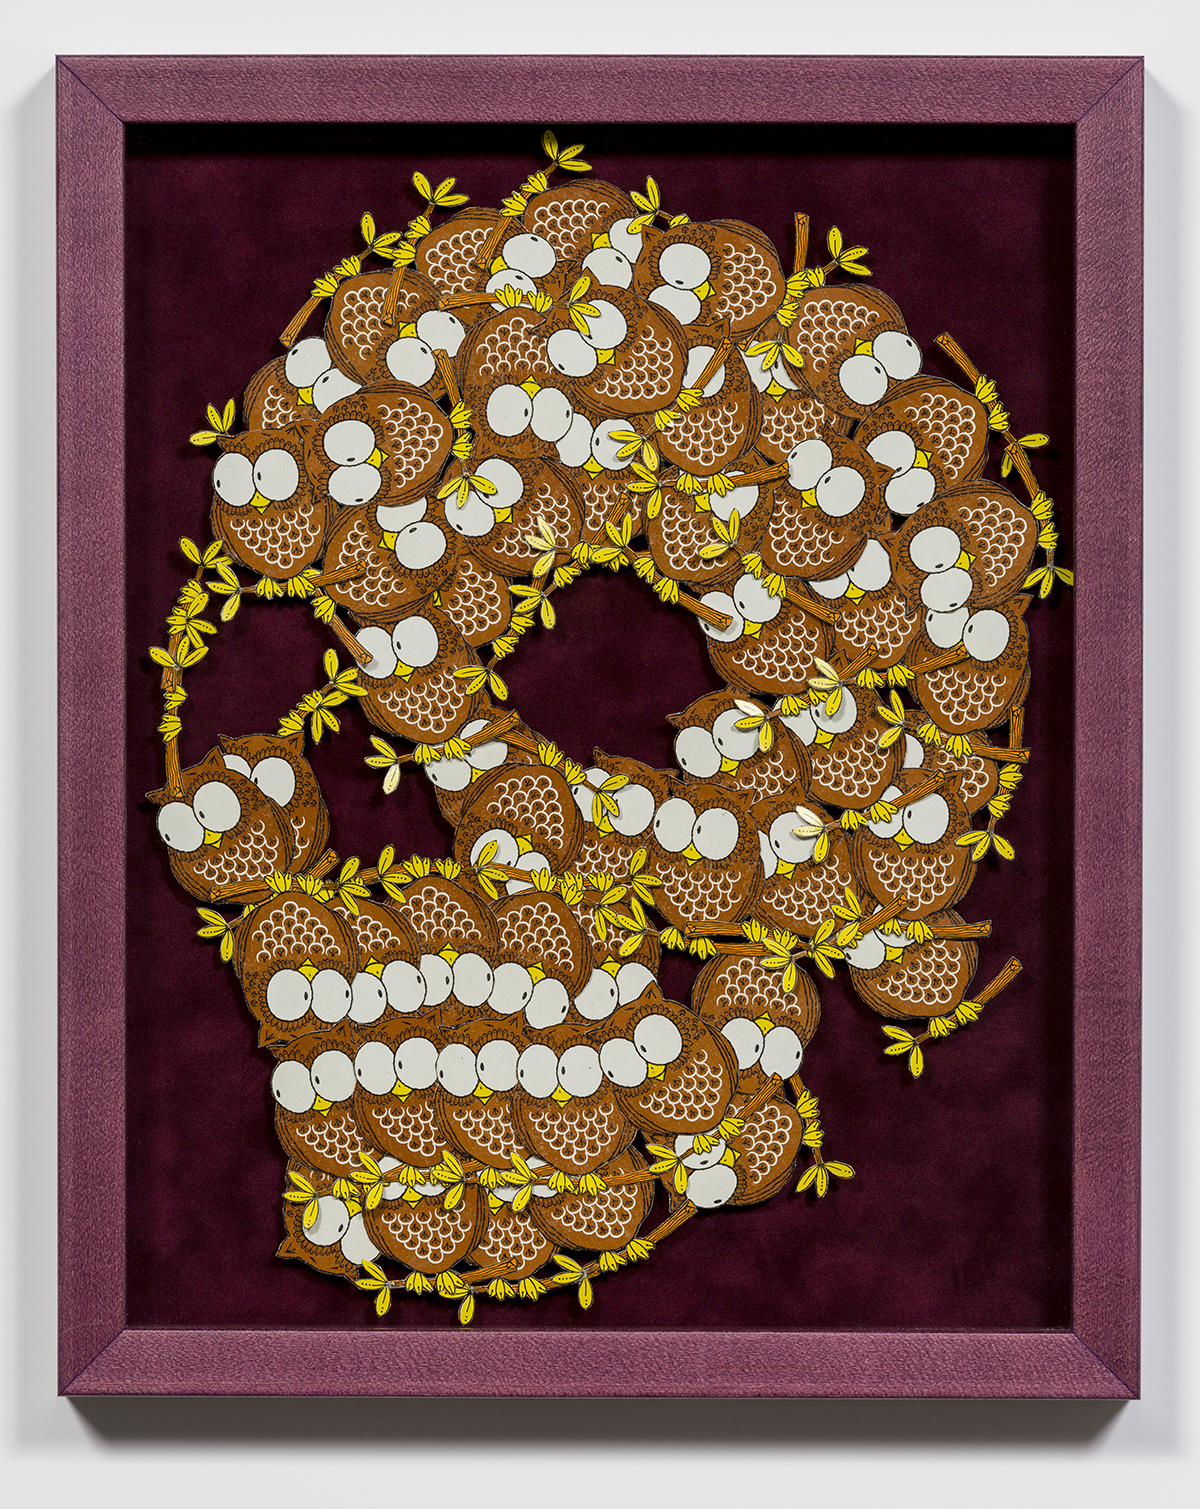 """Lucien Durey, """"Apparition IV"""", 2017, Playing Card Collage on Flocked Mat Board, 12.75 x 15.75, Framed. Estimate: $700."""